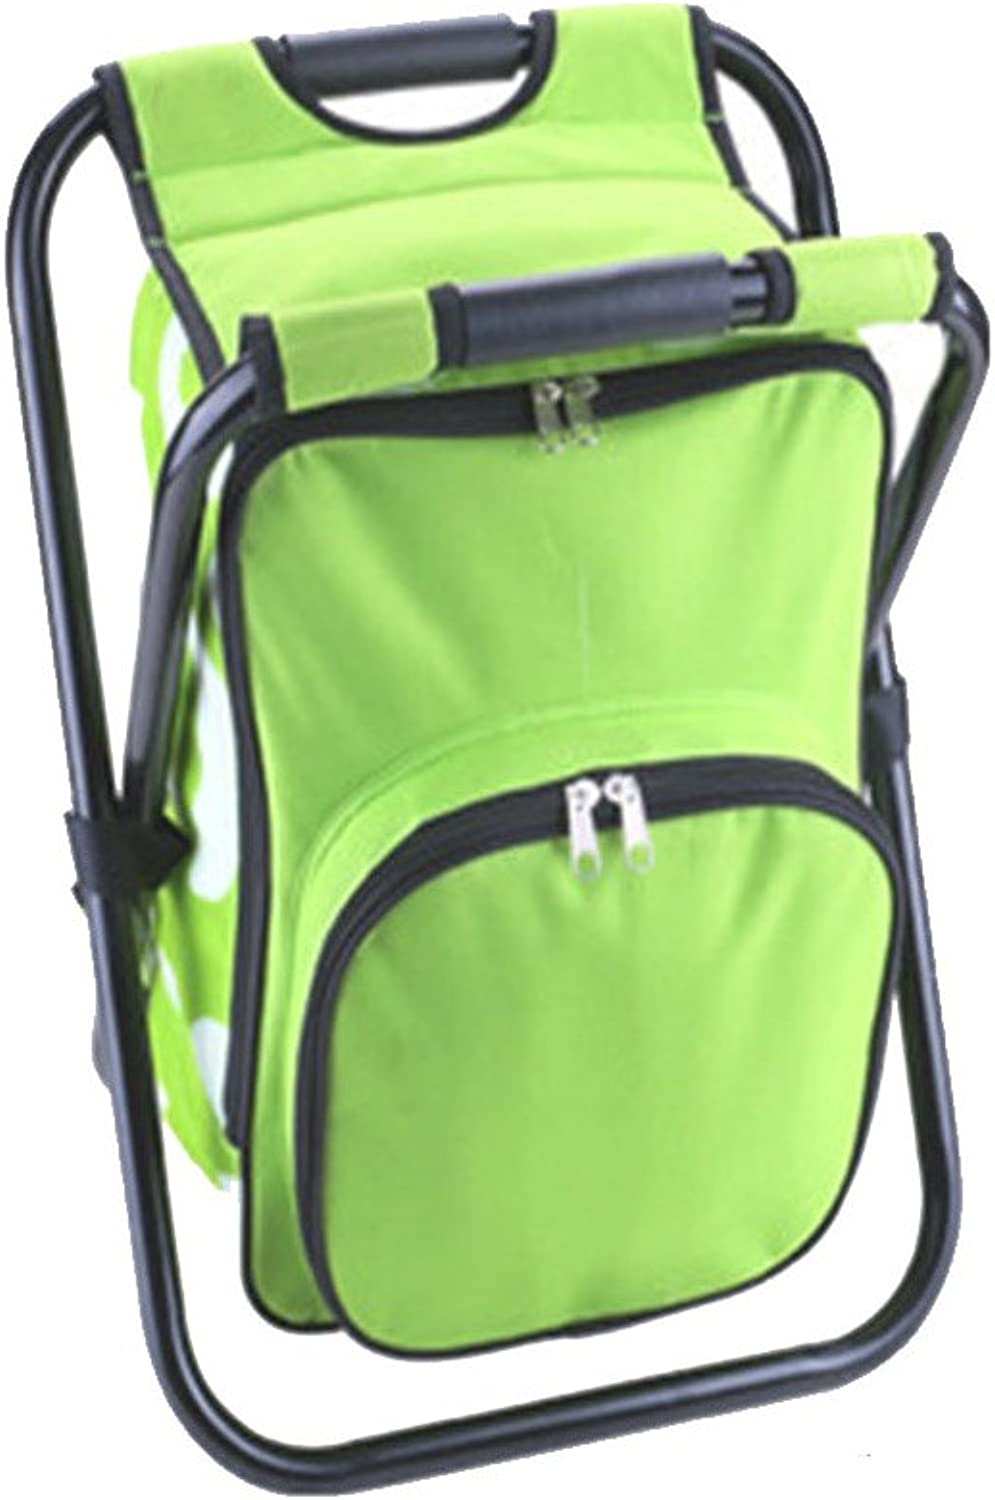 Folding Cooler and Stool Backpack, Multifunction Collapsible Camping Seat and Insulated Ice Bag with Padded Shoulder Straps